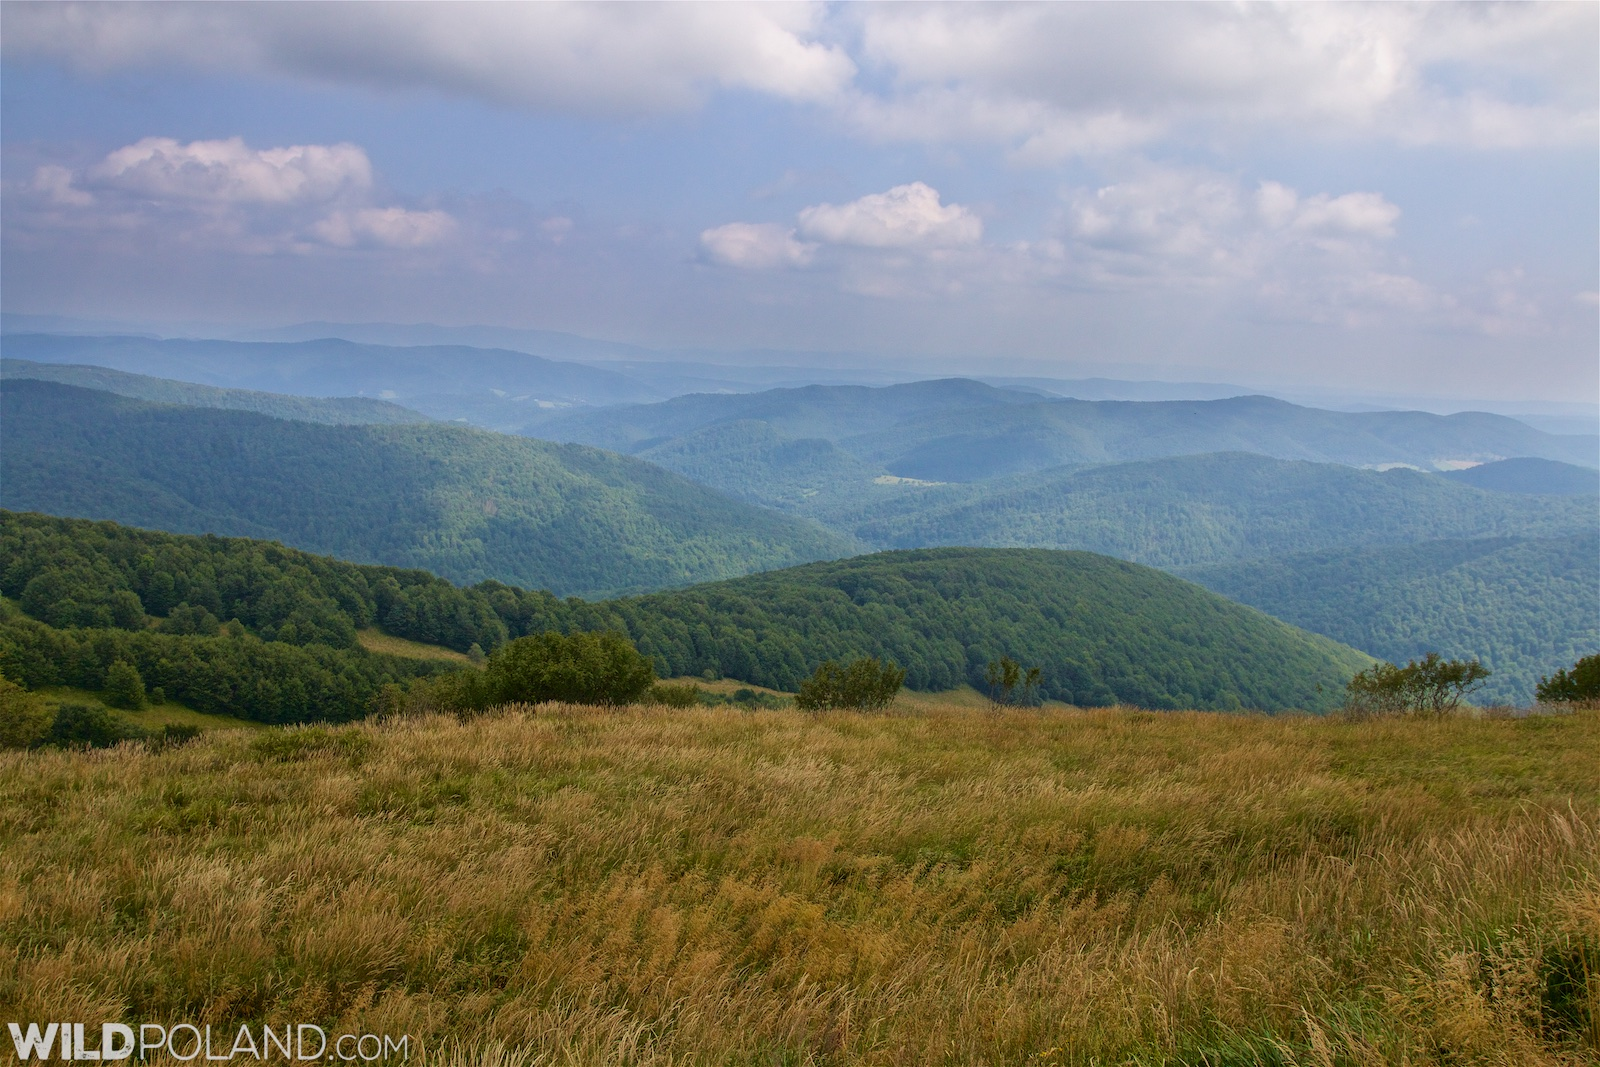 In the Bieszczady Mountains